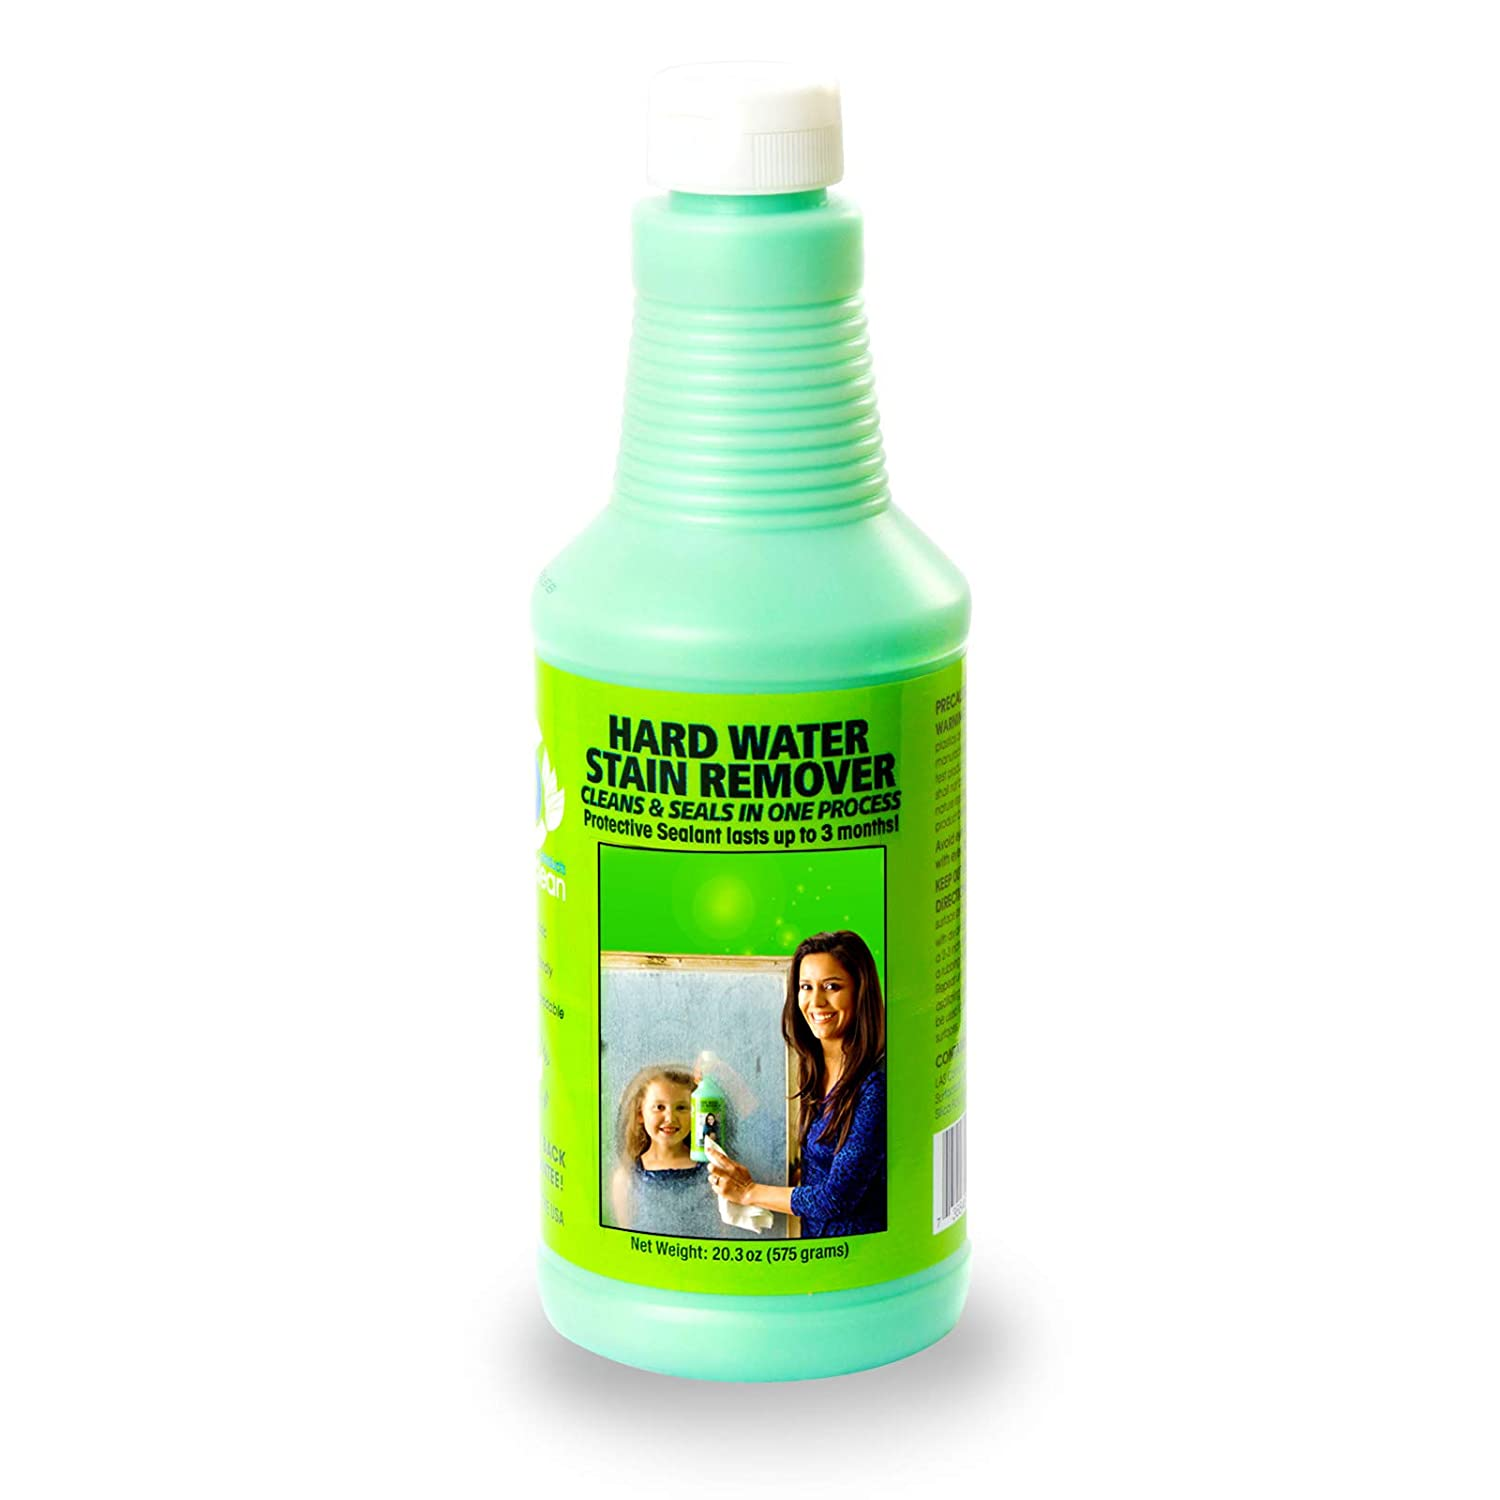 4.Bio Clean: Eco Friendly Hard Water Stain Remover